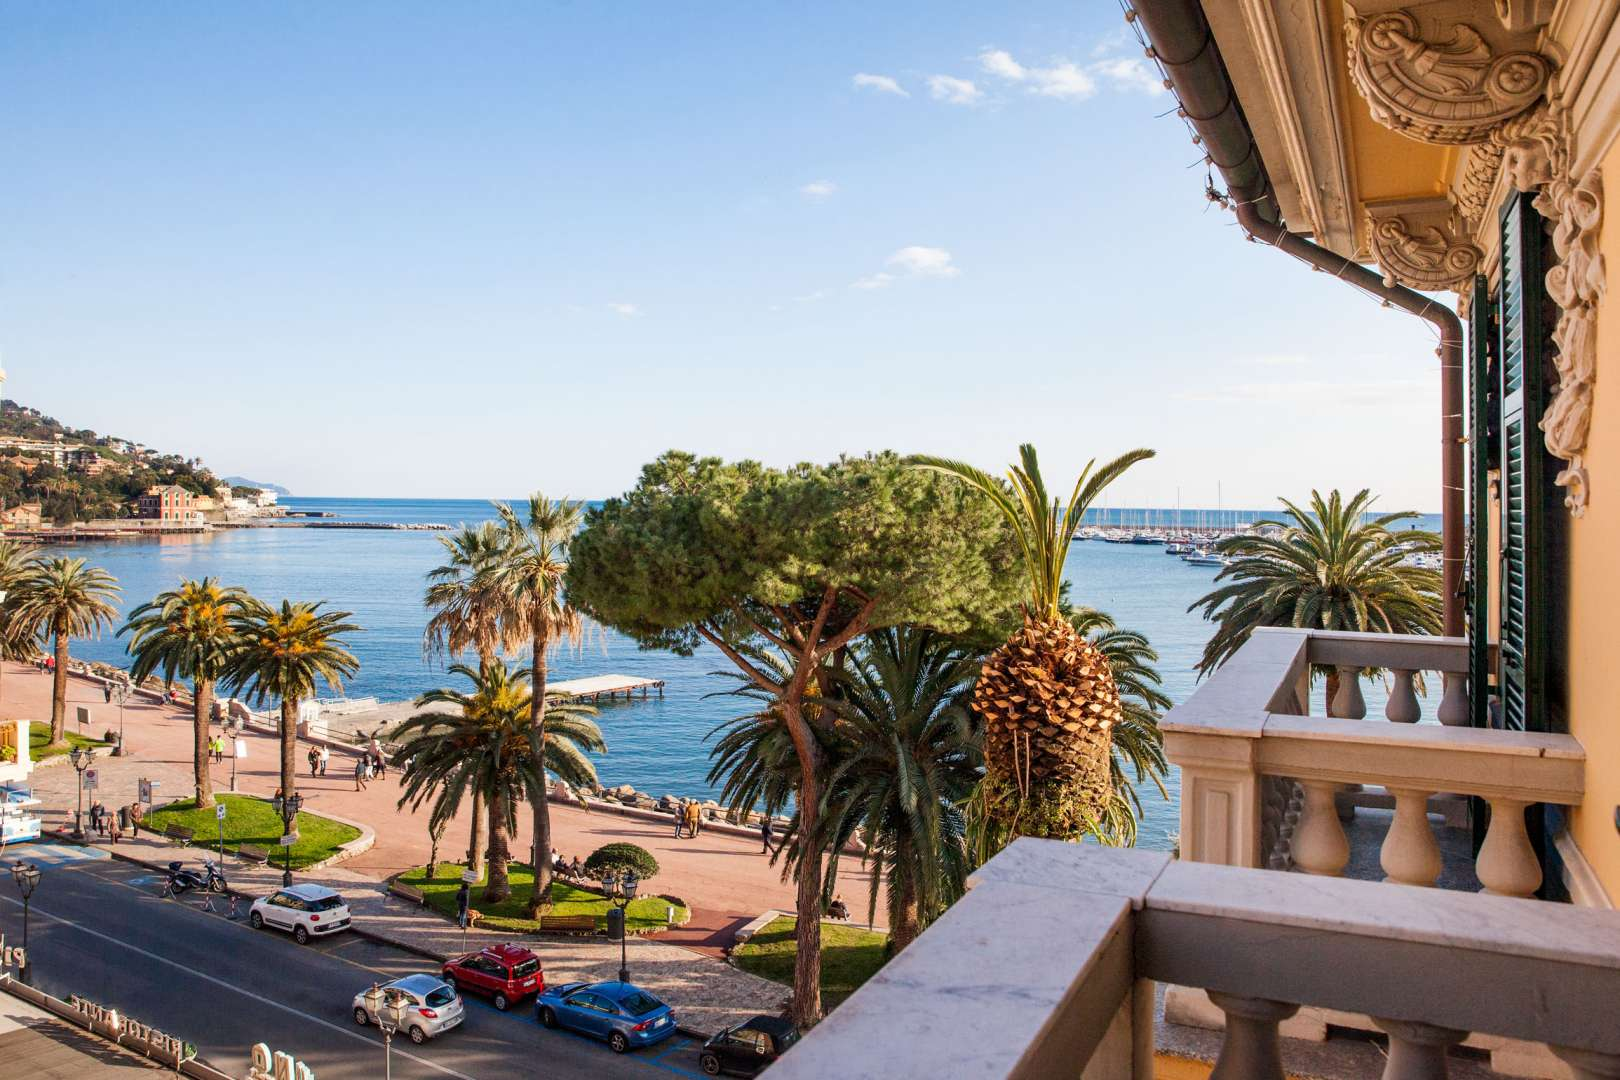 Hotel Ottobre Mare Rapallo: Offerta Bed and Breakfast